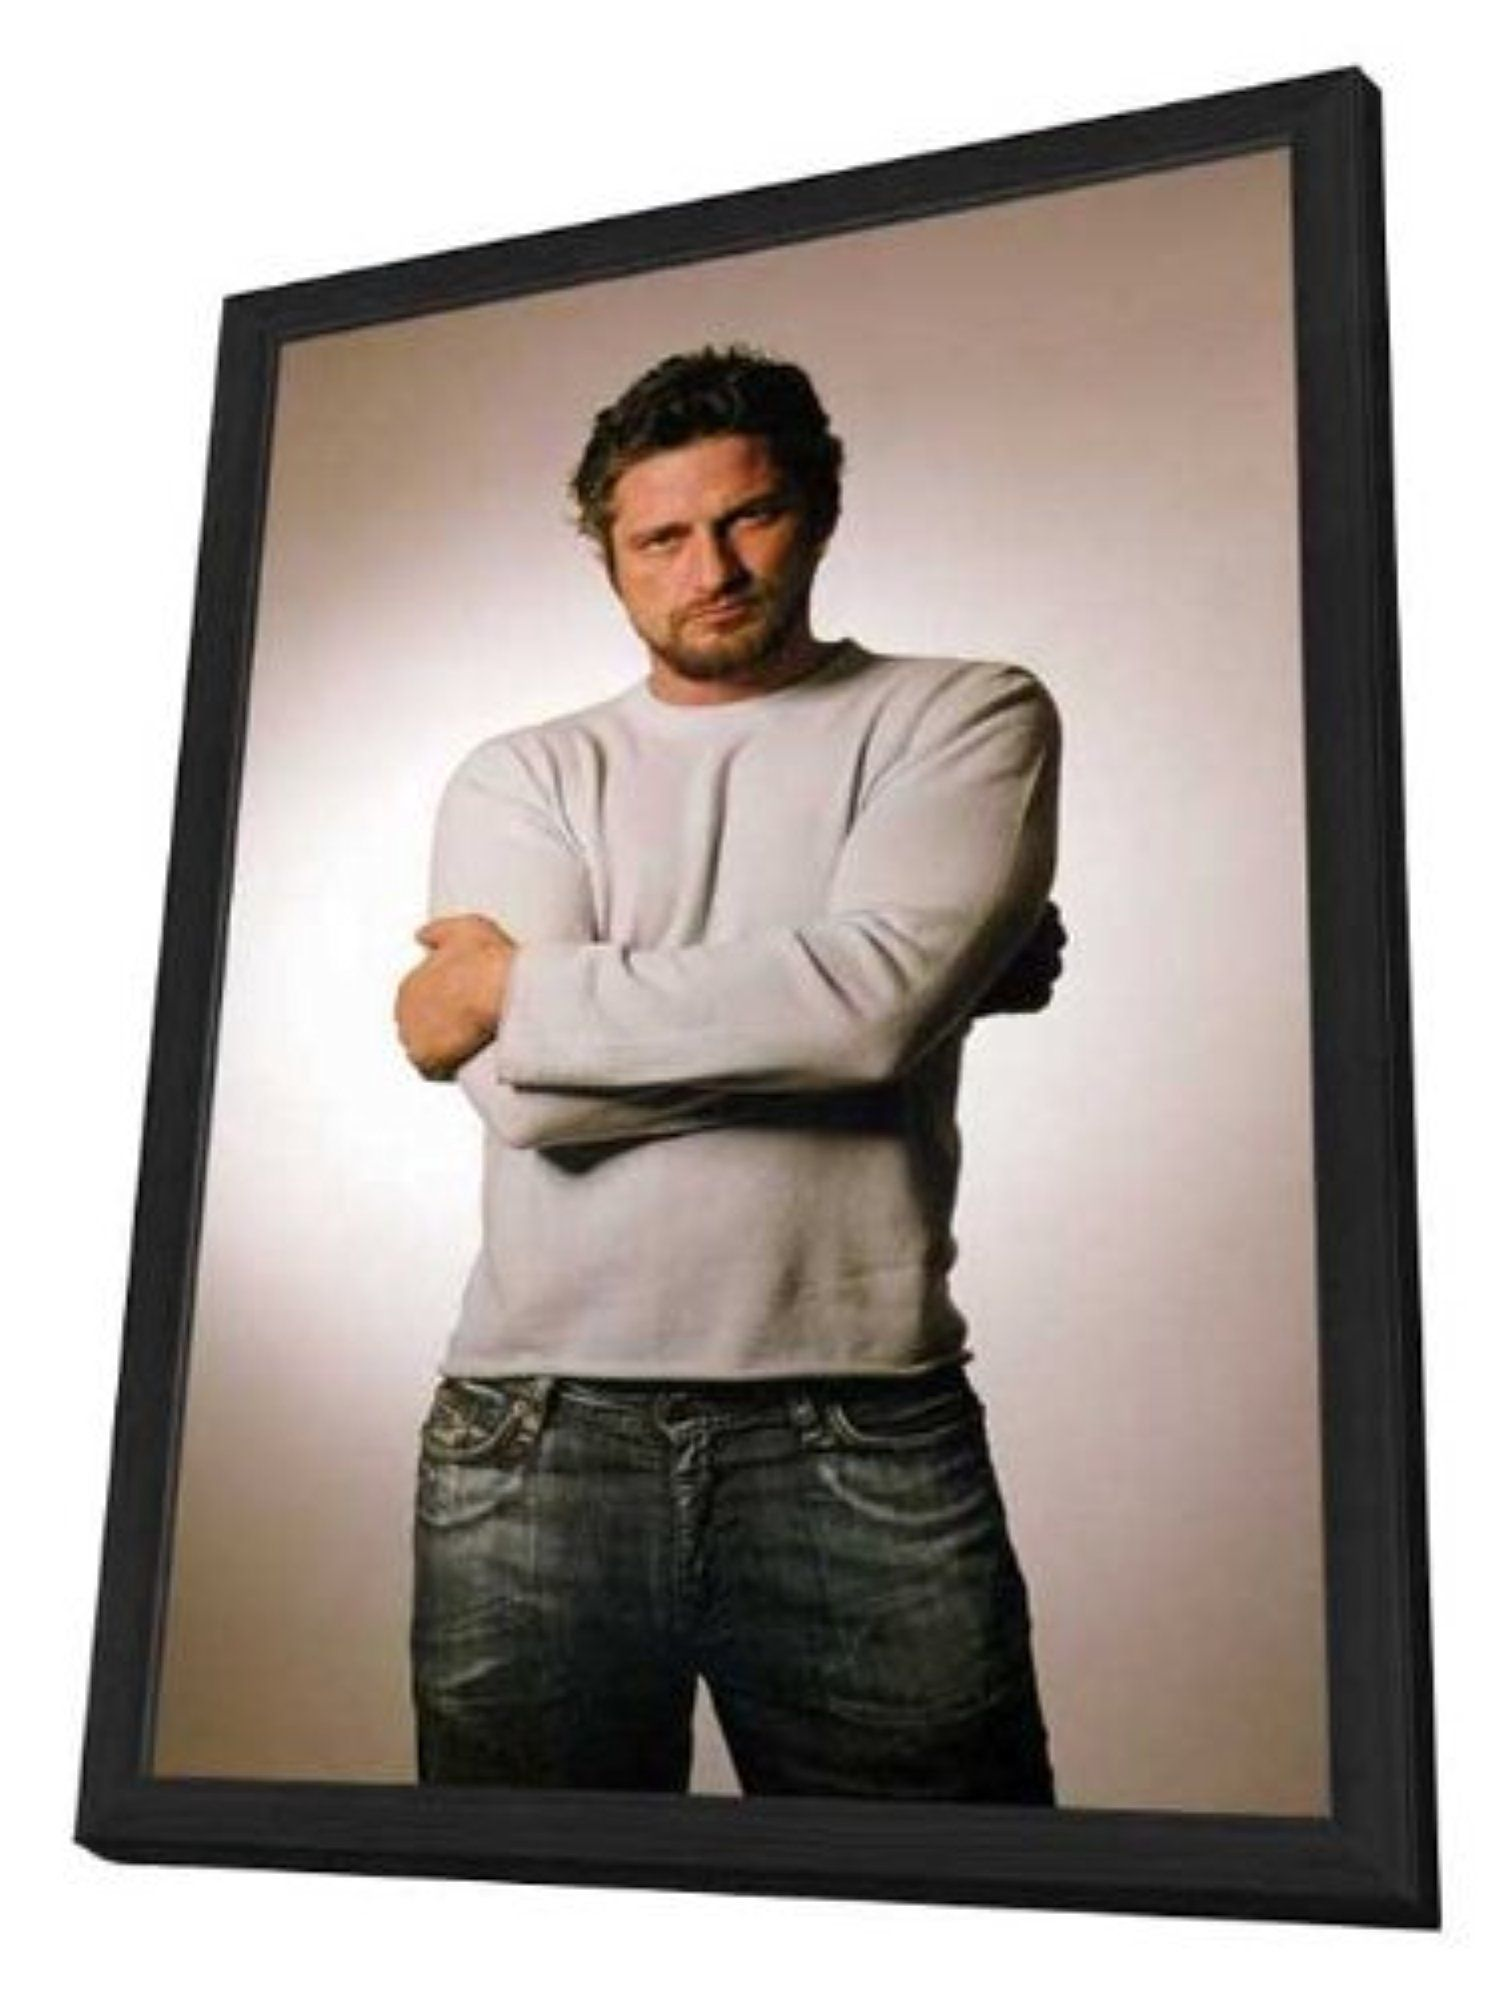 Decal jewelry gerard butler 27 x 40 movie poster style a in decal jewelry gerard butler 27 x 40 movie poster style a in delu wood jeuxipadfo Gallery